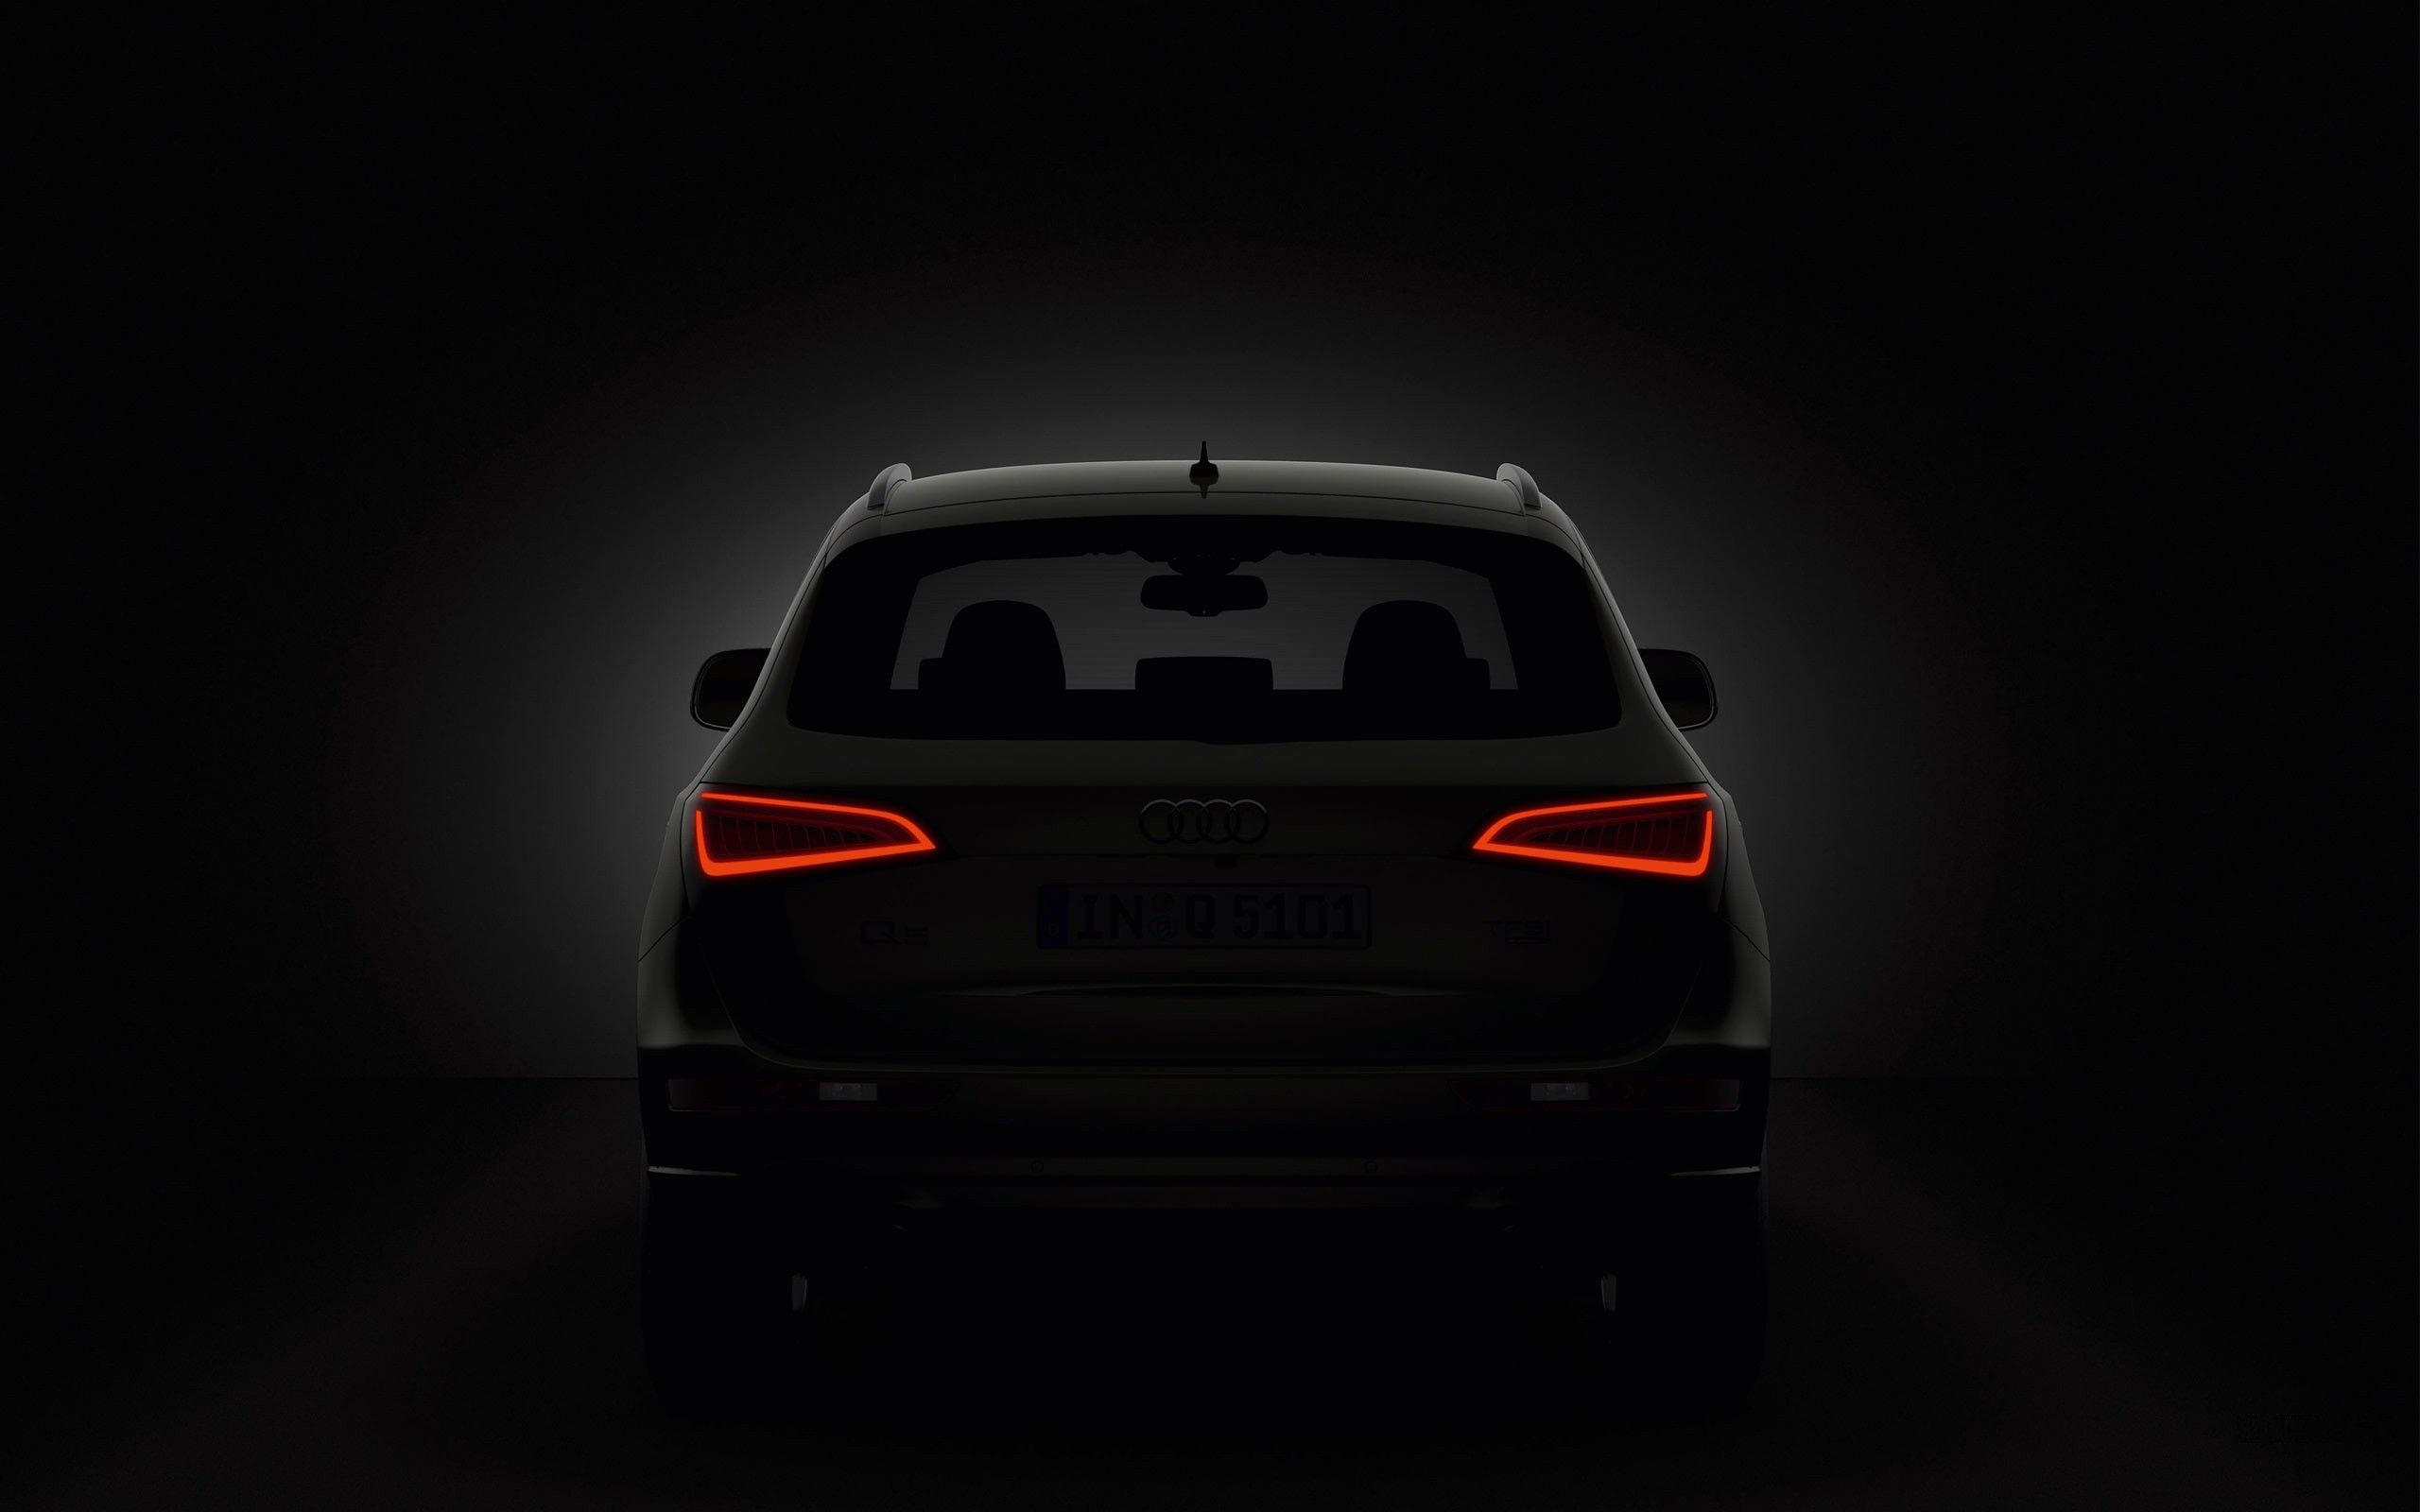 2560x1600 - Audi Q5 Wallpapers 27